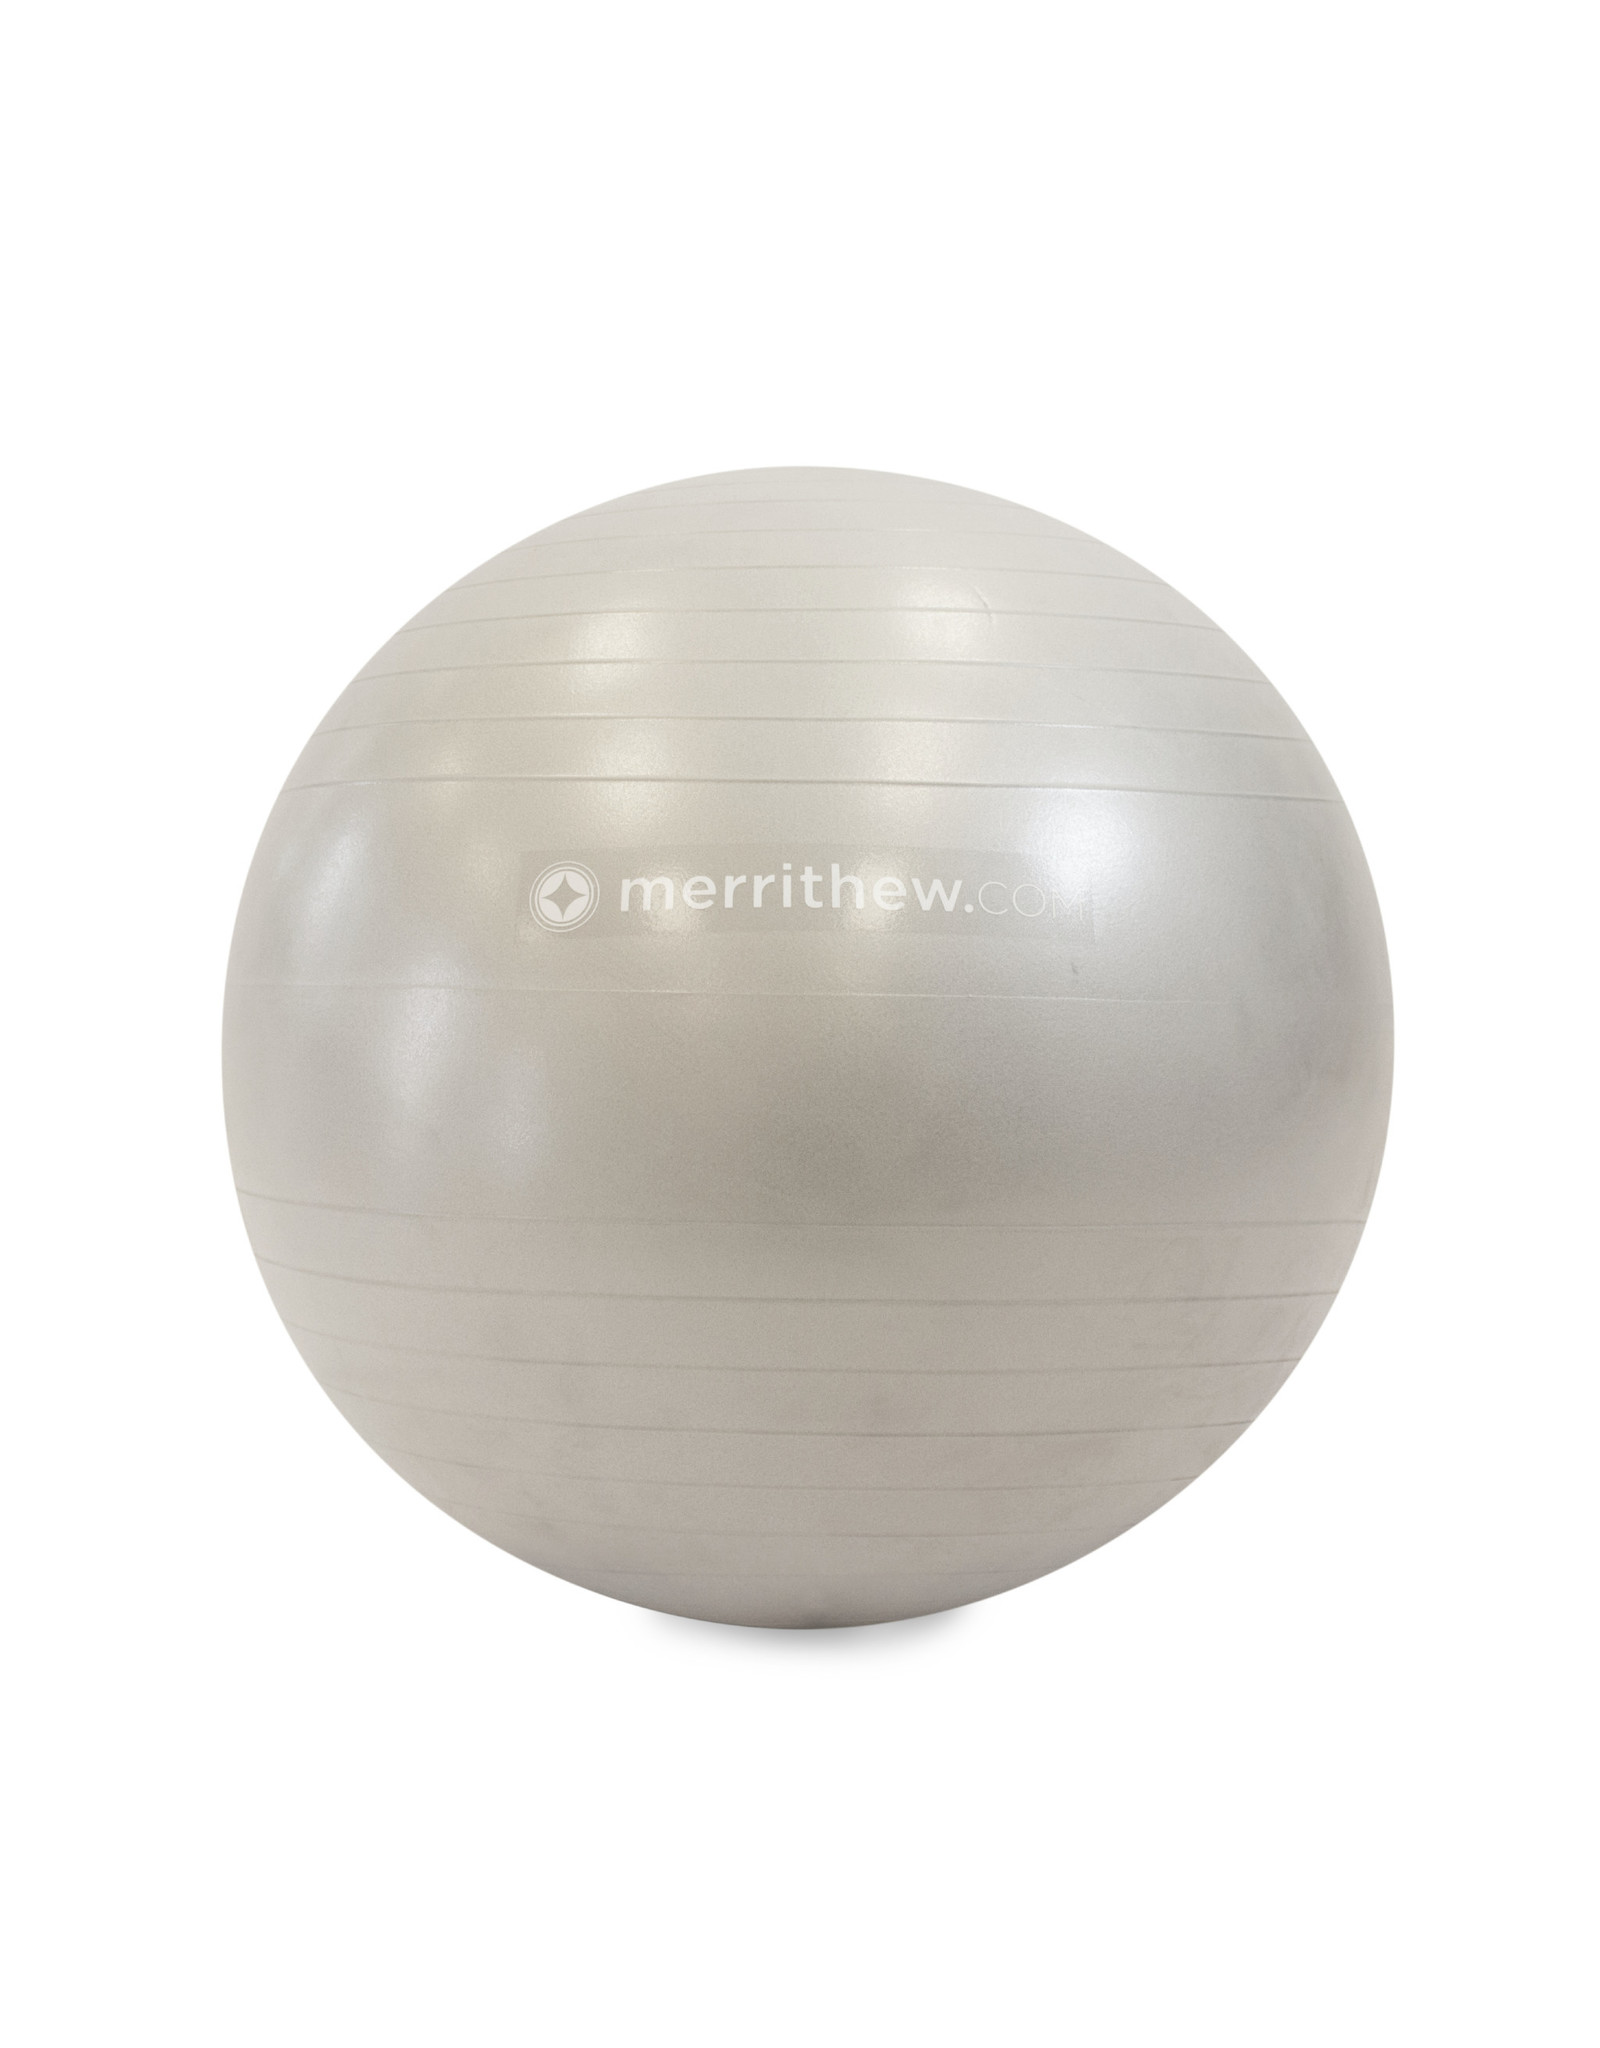 MERRITHEW Ball - Stability Ball™ Plus 65cm (silver) with pump